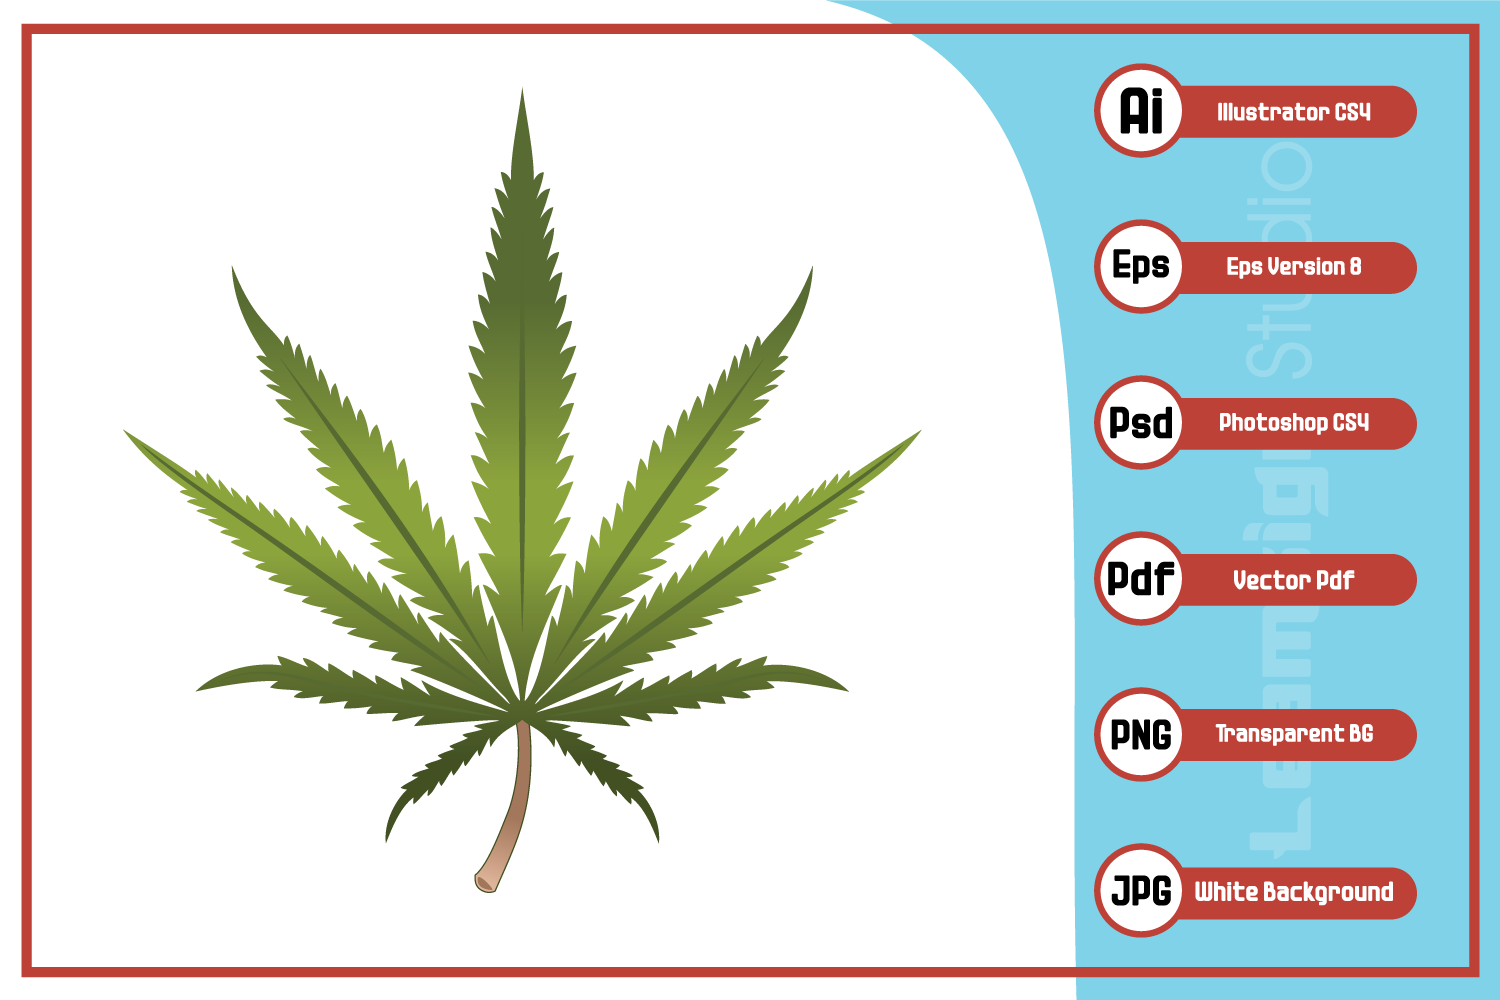 Download Free Realistic Marijuana Leaf Illustration Graphic By Leamsign for Cricut Explore, Silhouette and other cutting machines.